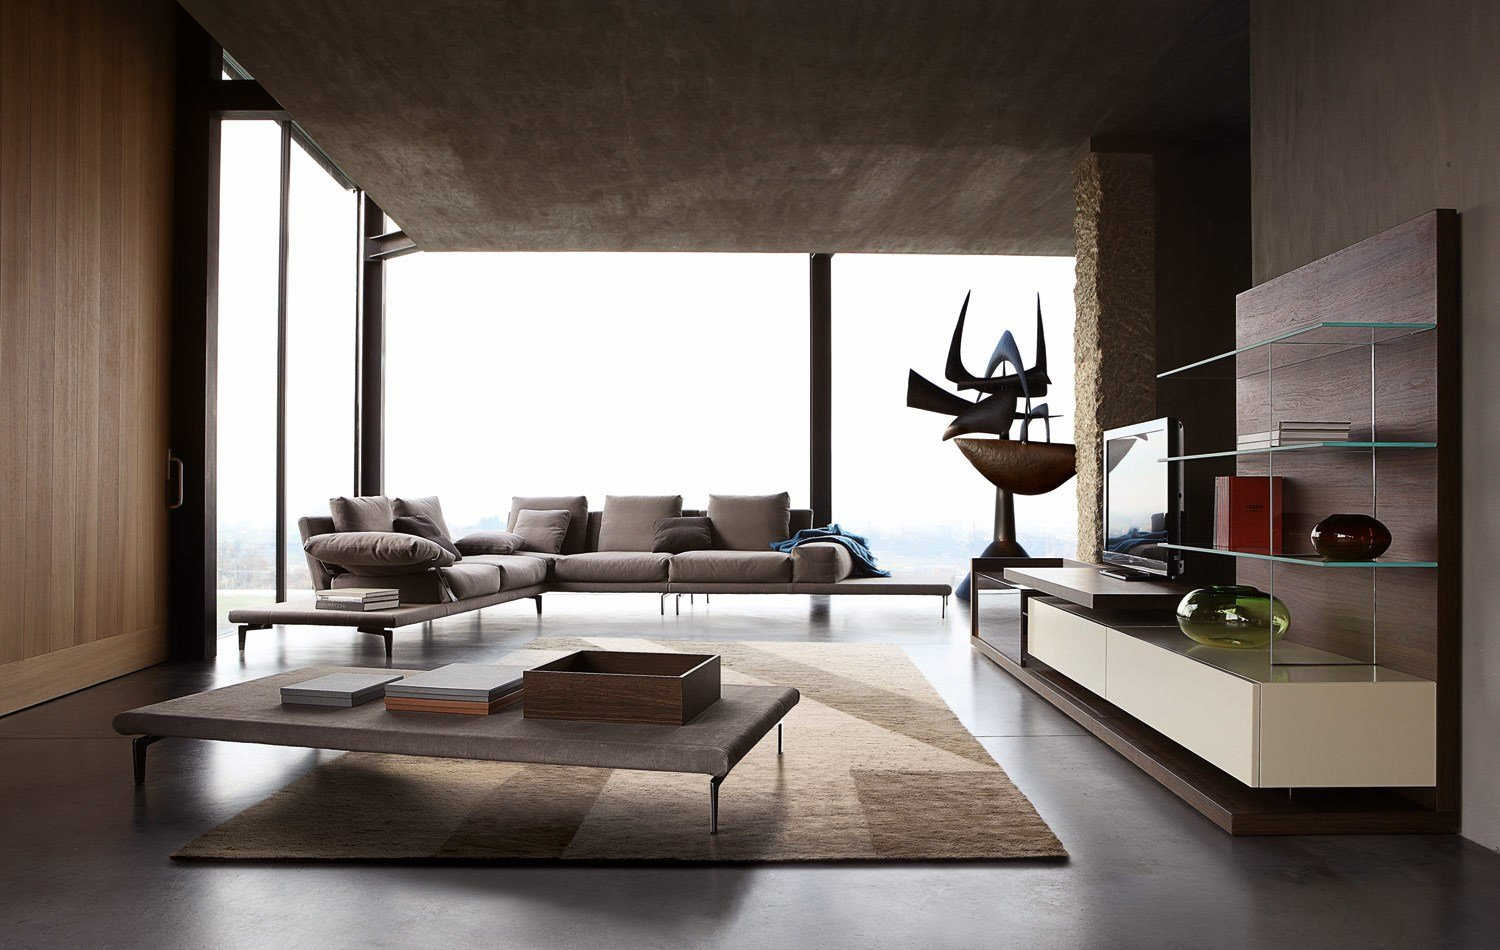 Sectional modular sofa echoes by roche bobois design mauro for Sofas grandes modernos